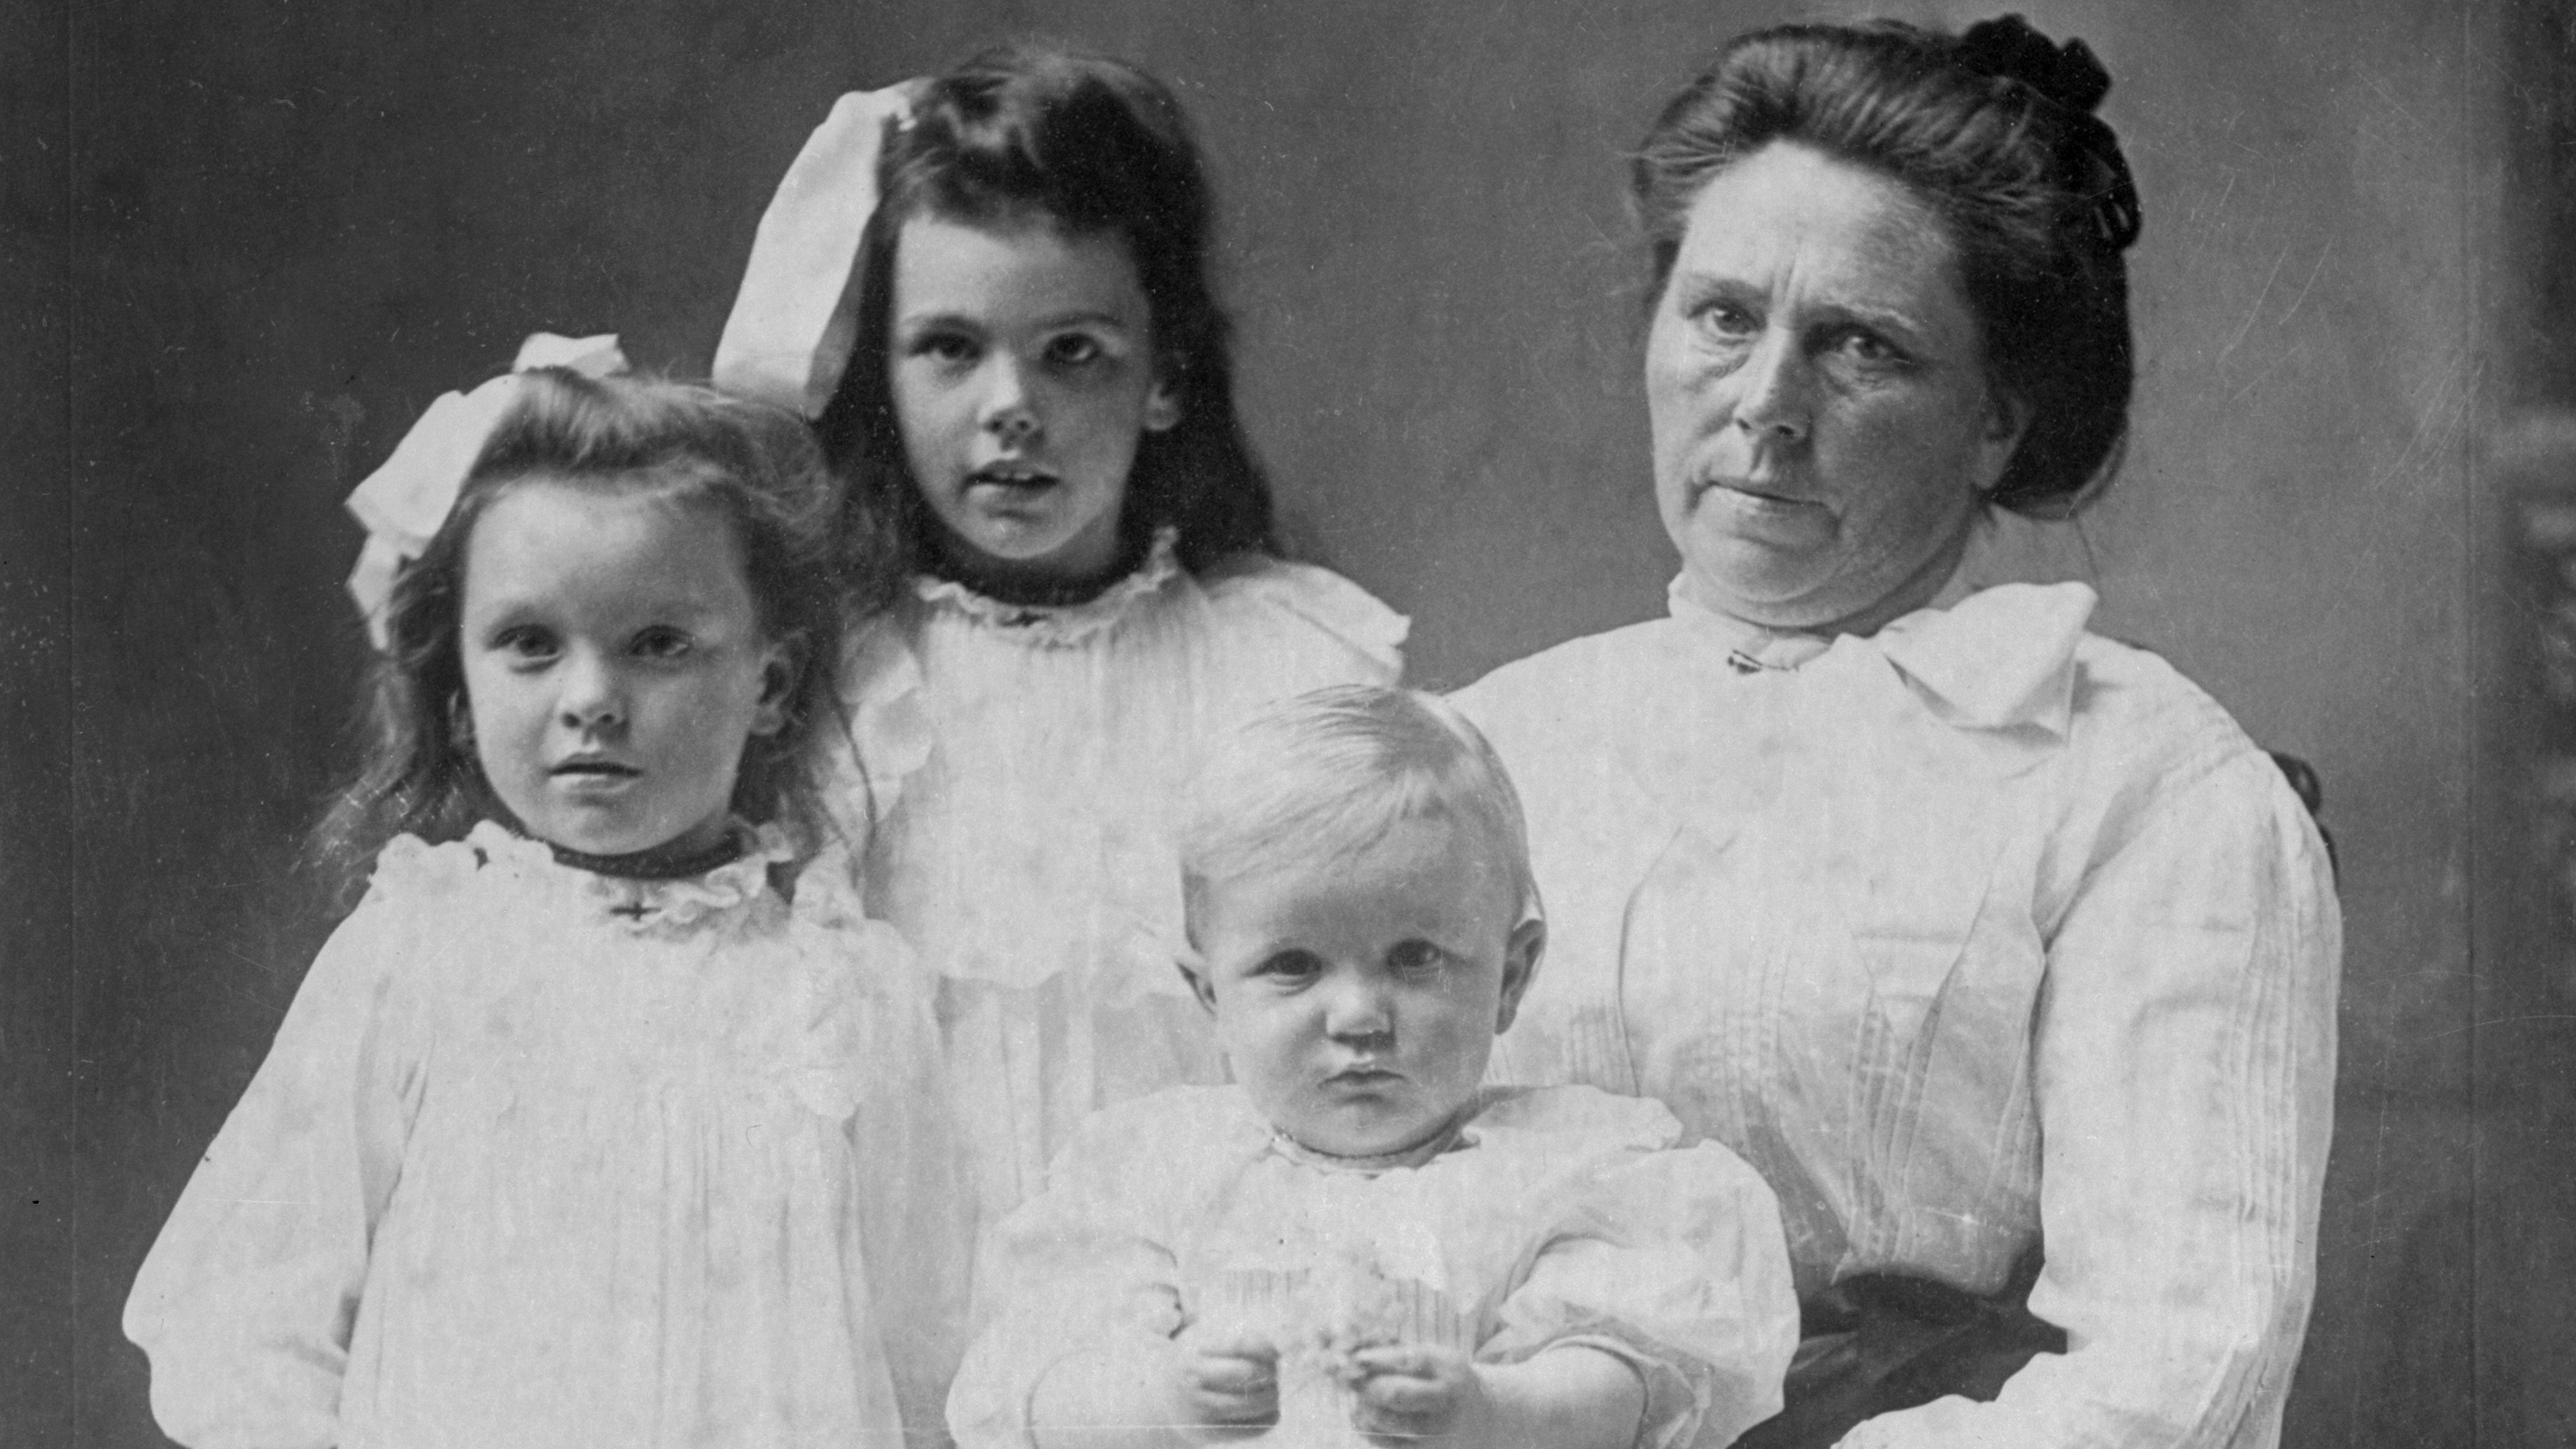 Belle Gunness: The Early 20th Century Female Serial Killer You Probably Haven't Heard Of